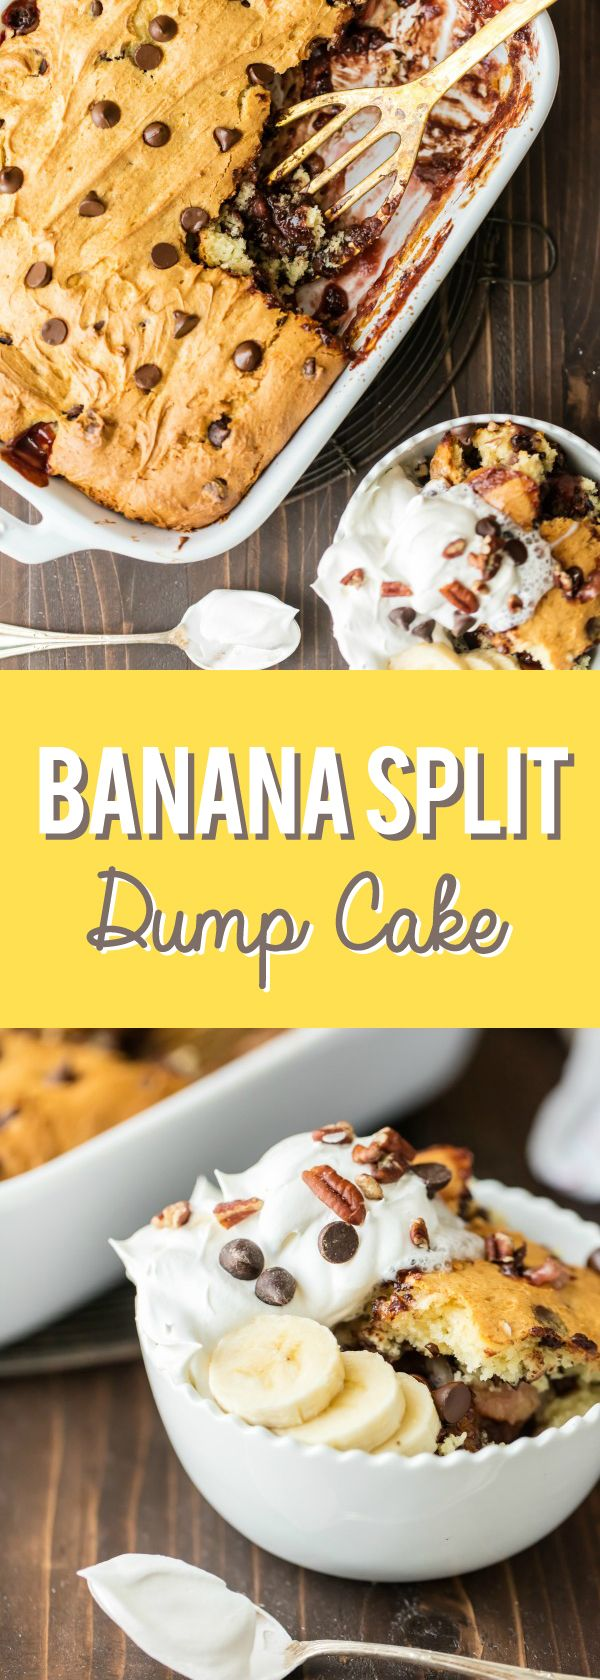 Banana Split Dump Cake couldn't be easier, or more delicious. This cake uses only 6 simple ingredients and comes together in minutes! from @bakingaddiction